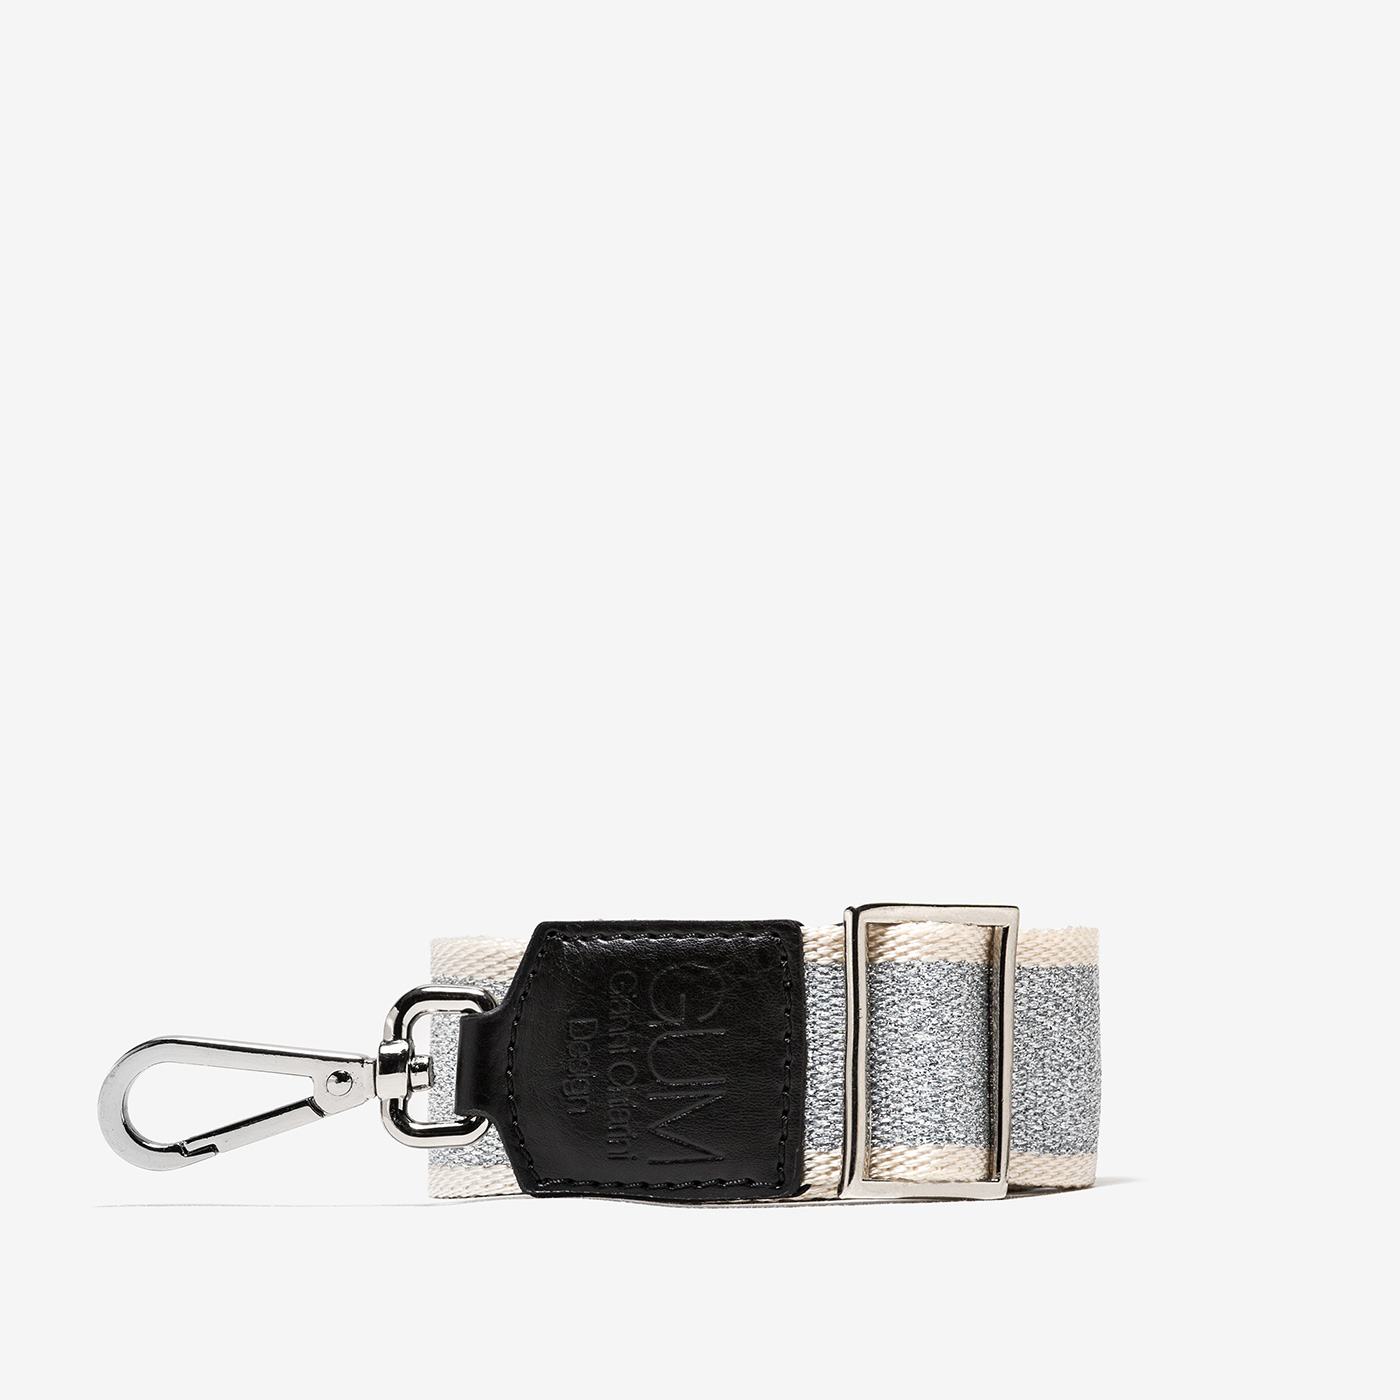 GUM: ADJUSTABLE SHOULDER STRAP WITH CHECK PATTERN